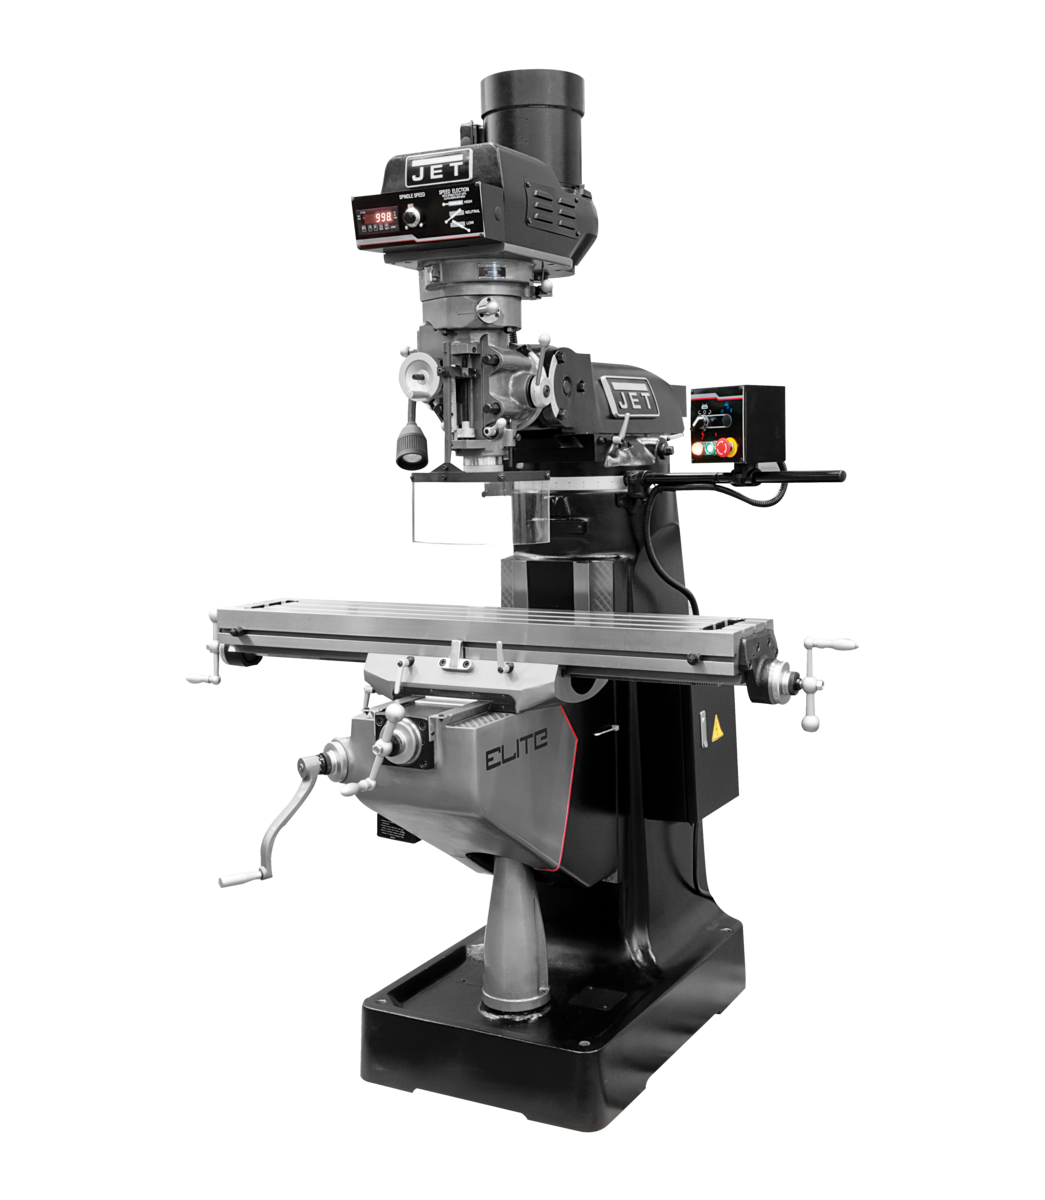 EVS-949 Mill with 3-Axis Newall DP700 (Quill) DRO and X, Y-Axis JET Powerfeeds